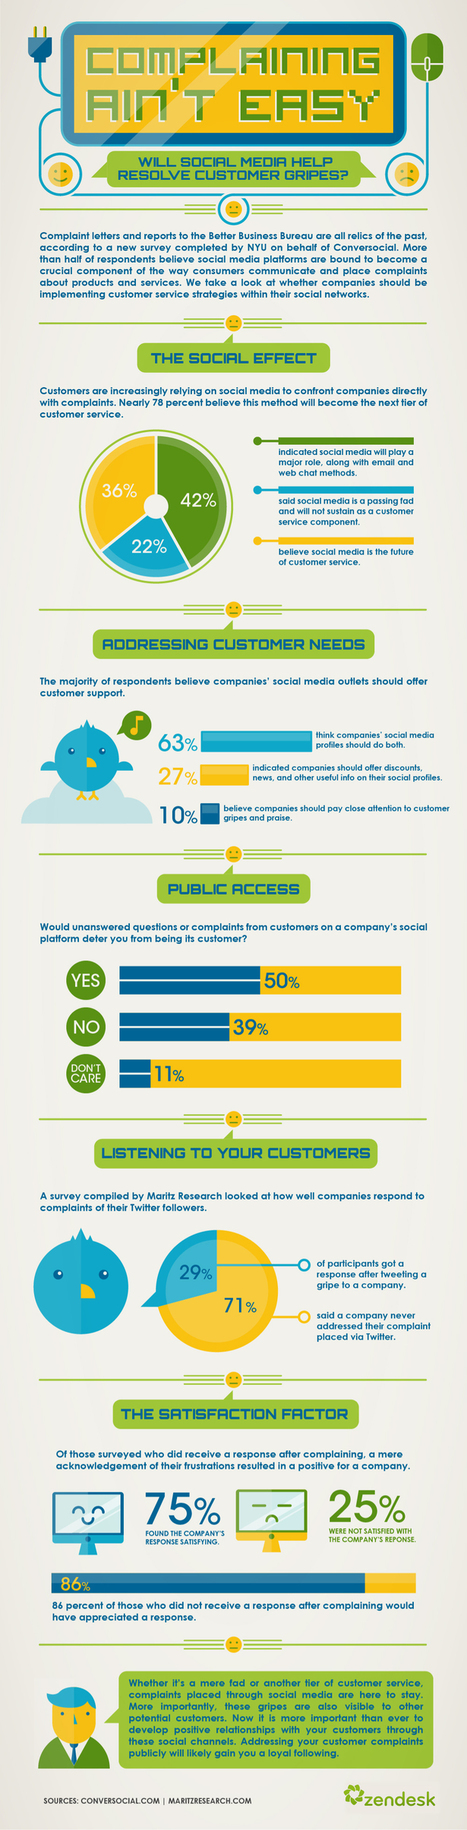 Is #SocialMedia The Future Of Customer Service? [INFOGRAPHIC] | Social Media e Innovación Tecnológica | Scoop.it